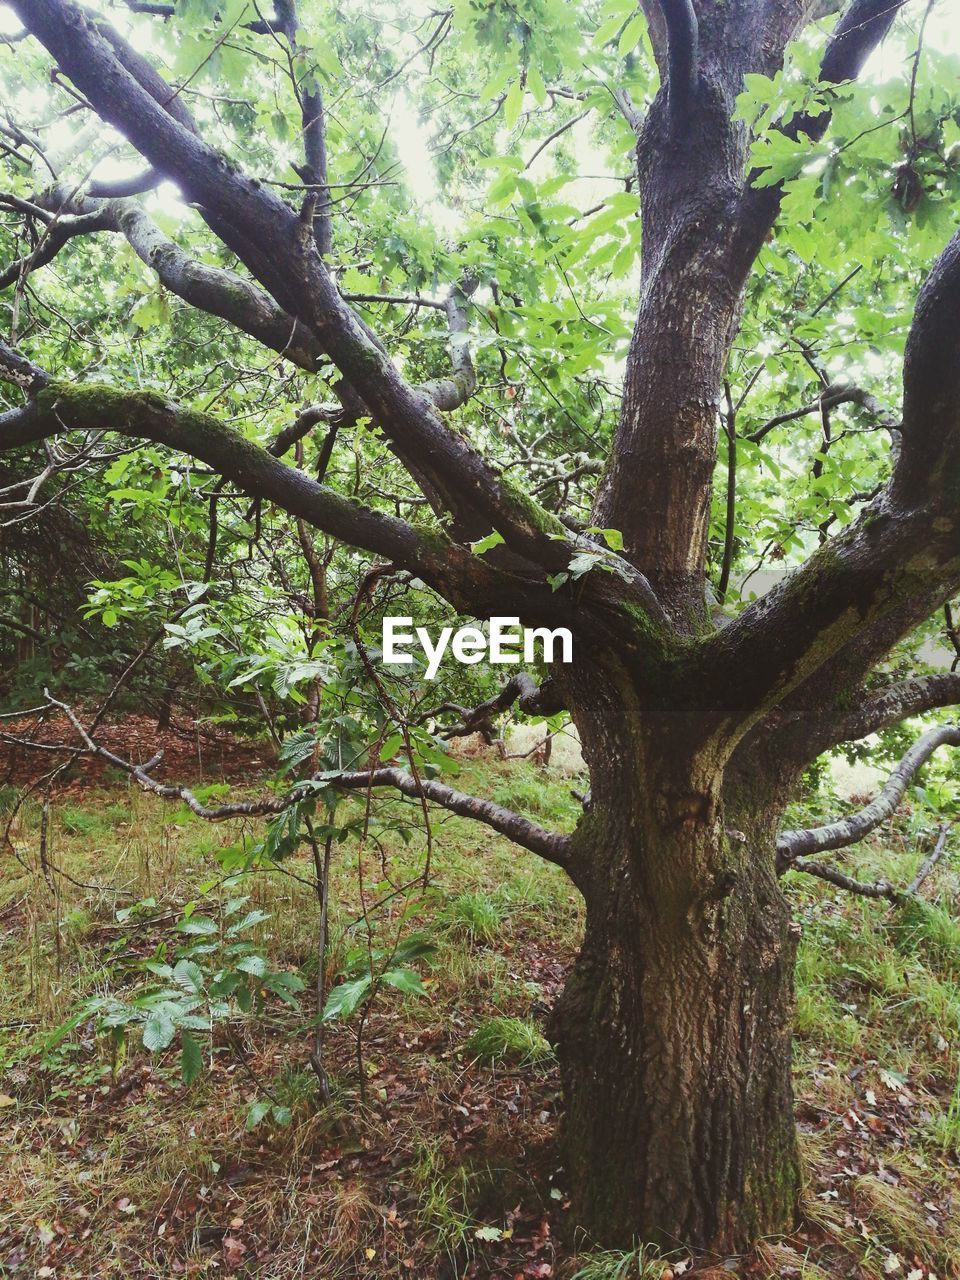 tree, plant, trunk, forest, nature, tree trunk, land, tranquility, day, branch, no people, growth, beauty in nature, outdoors, green color, scenics - nature, woodland, plant part, environment, tranquil scene